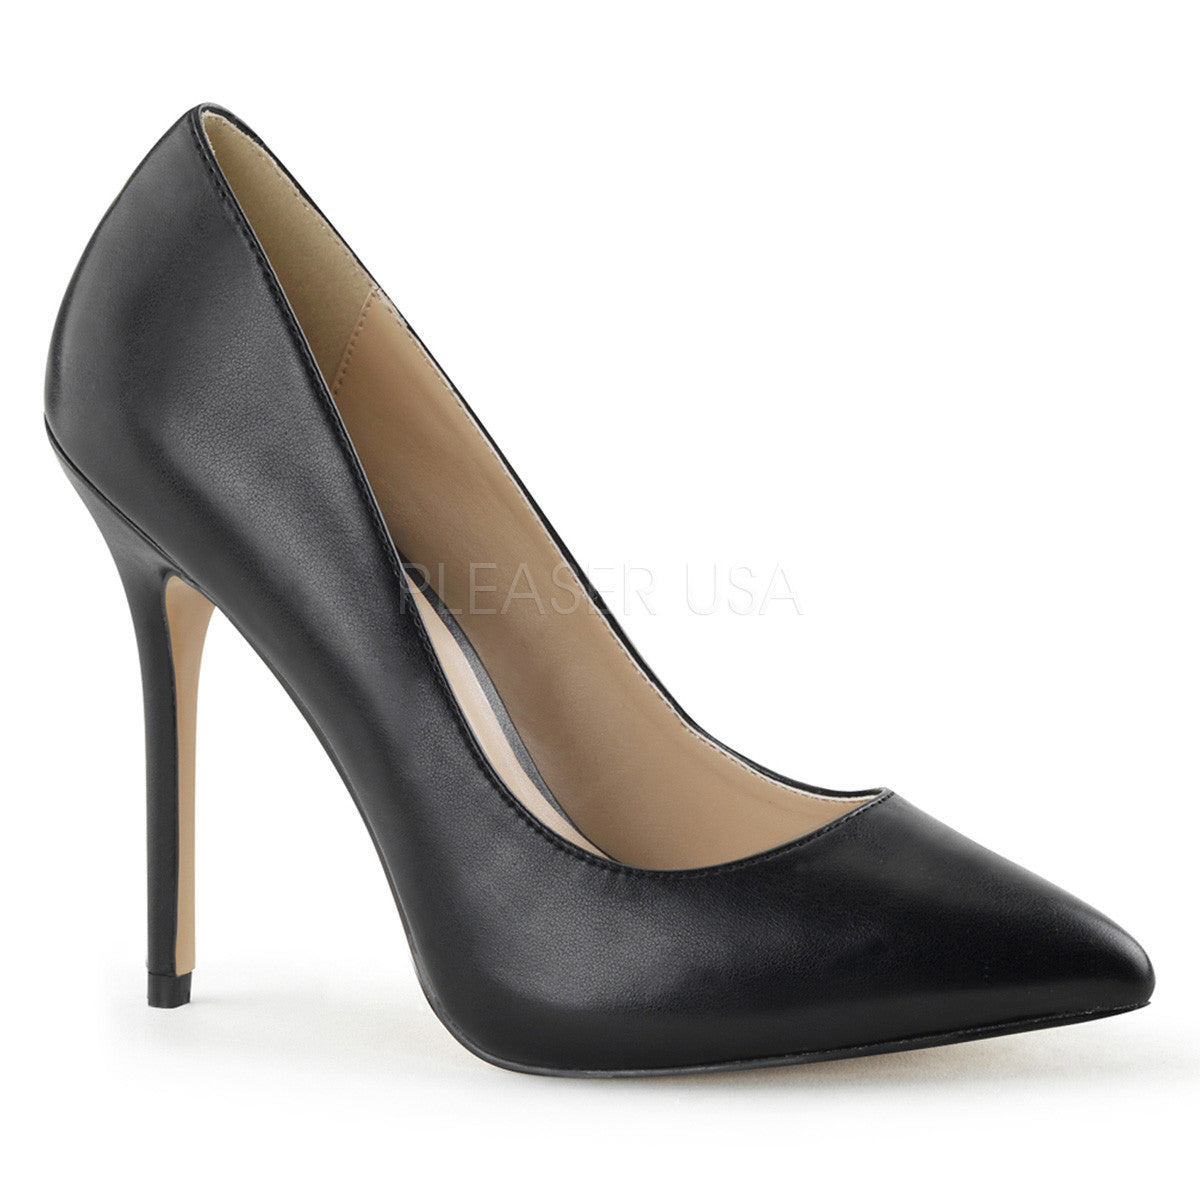 PLEASER AMUSE-20 Black Pu Pumps - Shoecup.com - 1